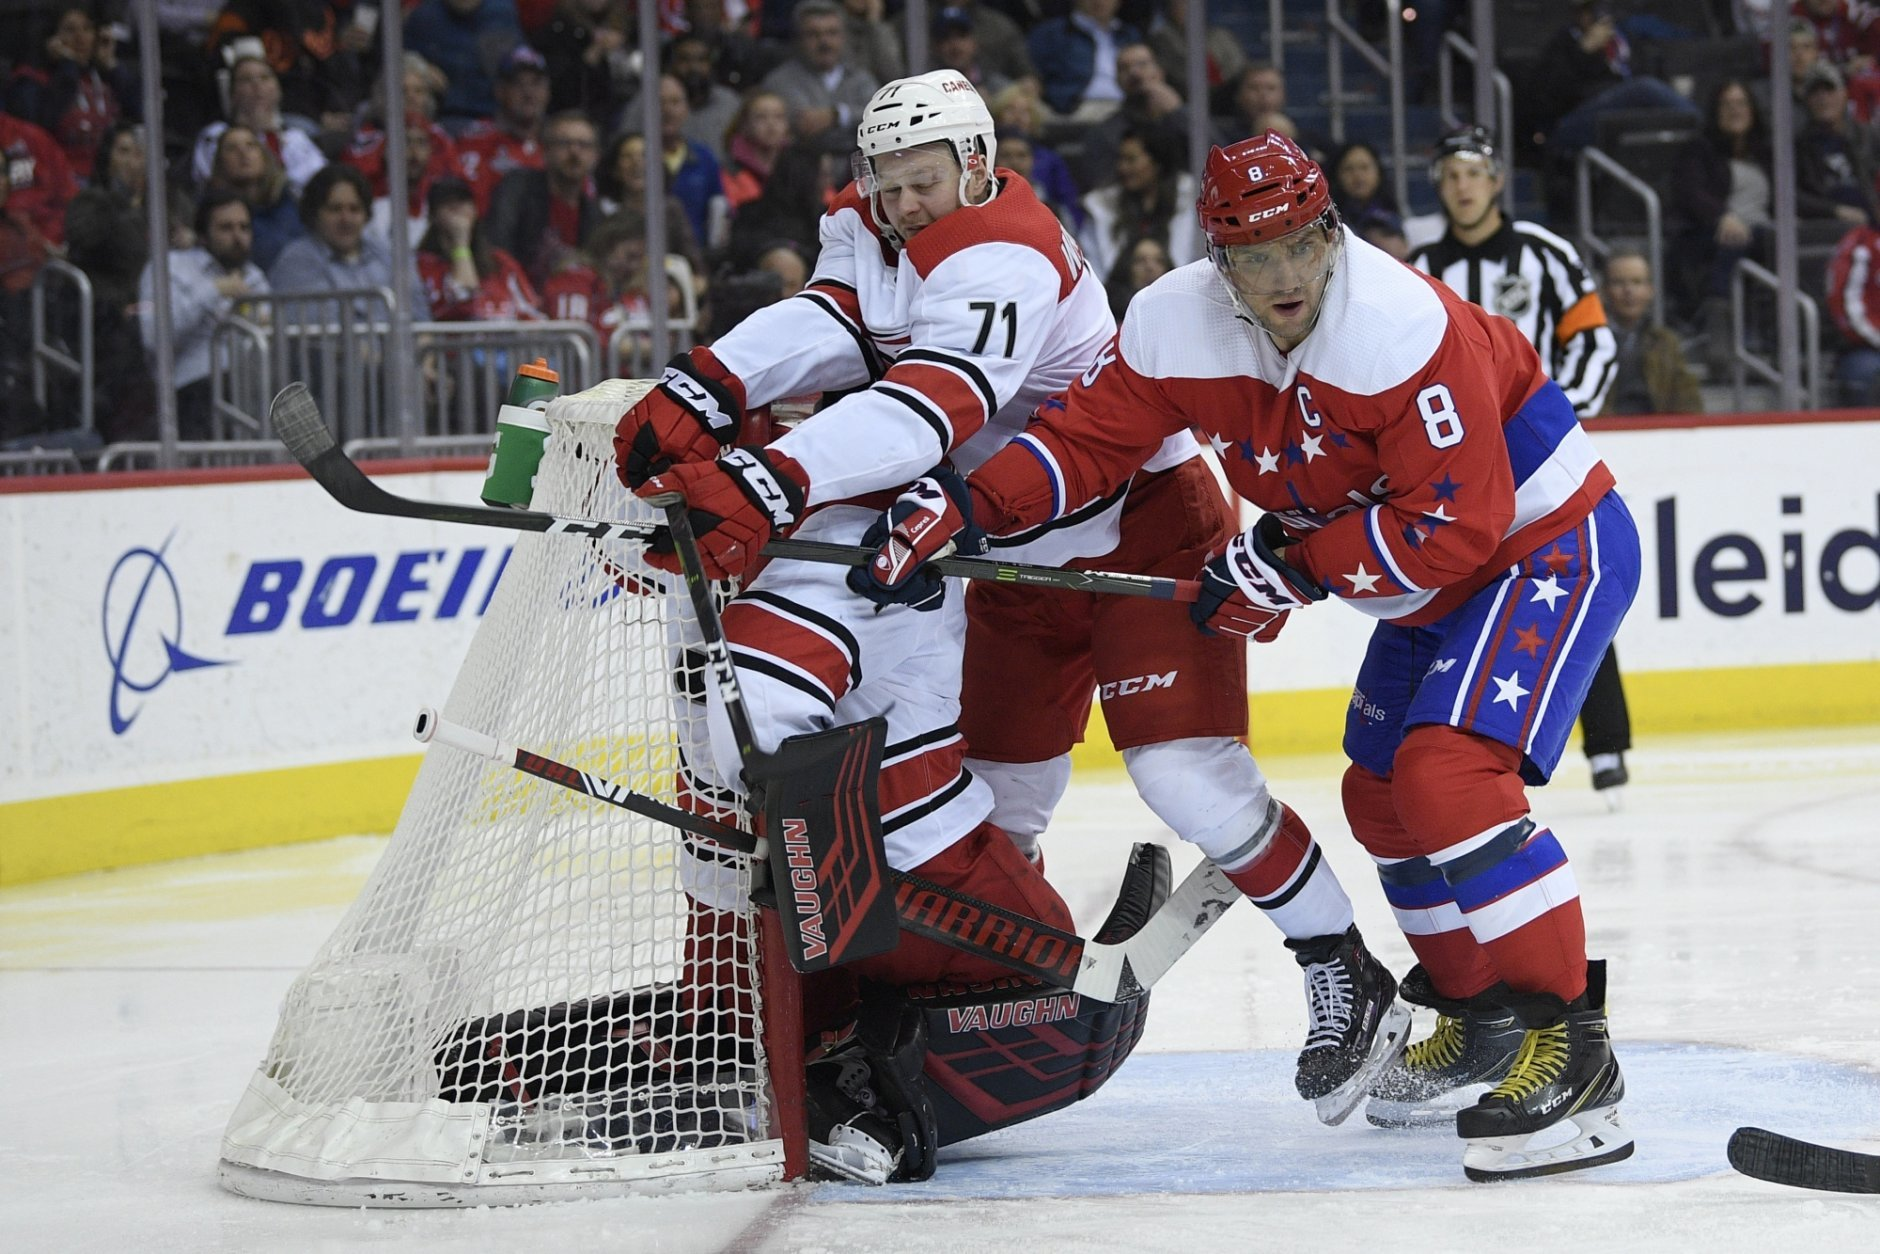 Washington Capitals left wing Alex Ovechkin (8), of Russia, battles with Carolina Hurricanes center Lucas Wallmark (71) and goaltender Petr Mrazek, left, during the second period of an NHL hockey game, Tuesday, March 26, 2019, in Washington. (AP Photo/Nick Wass)